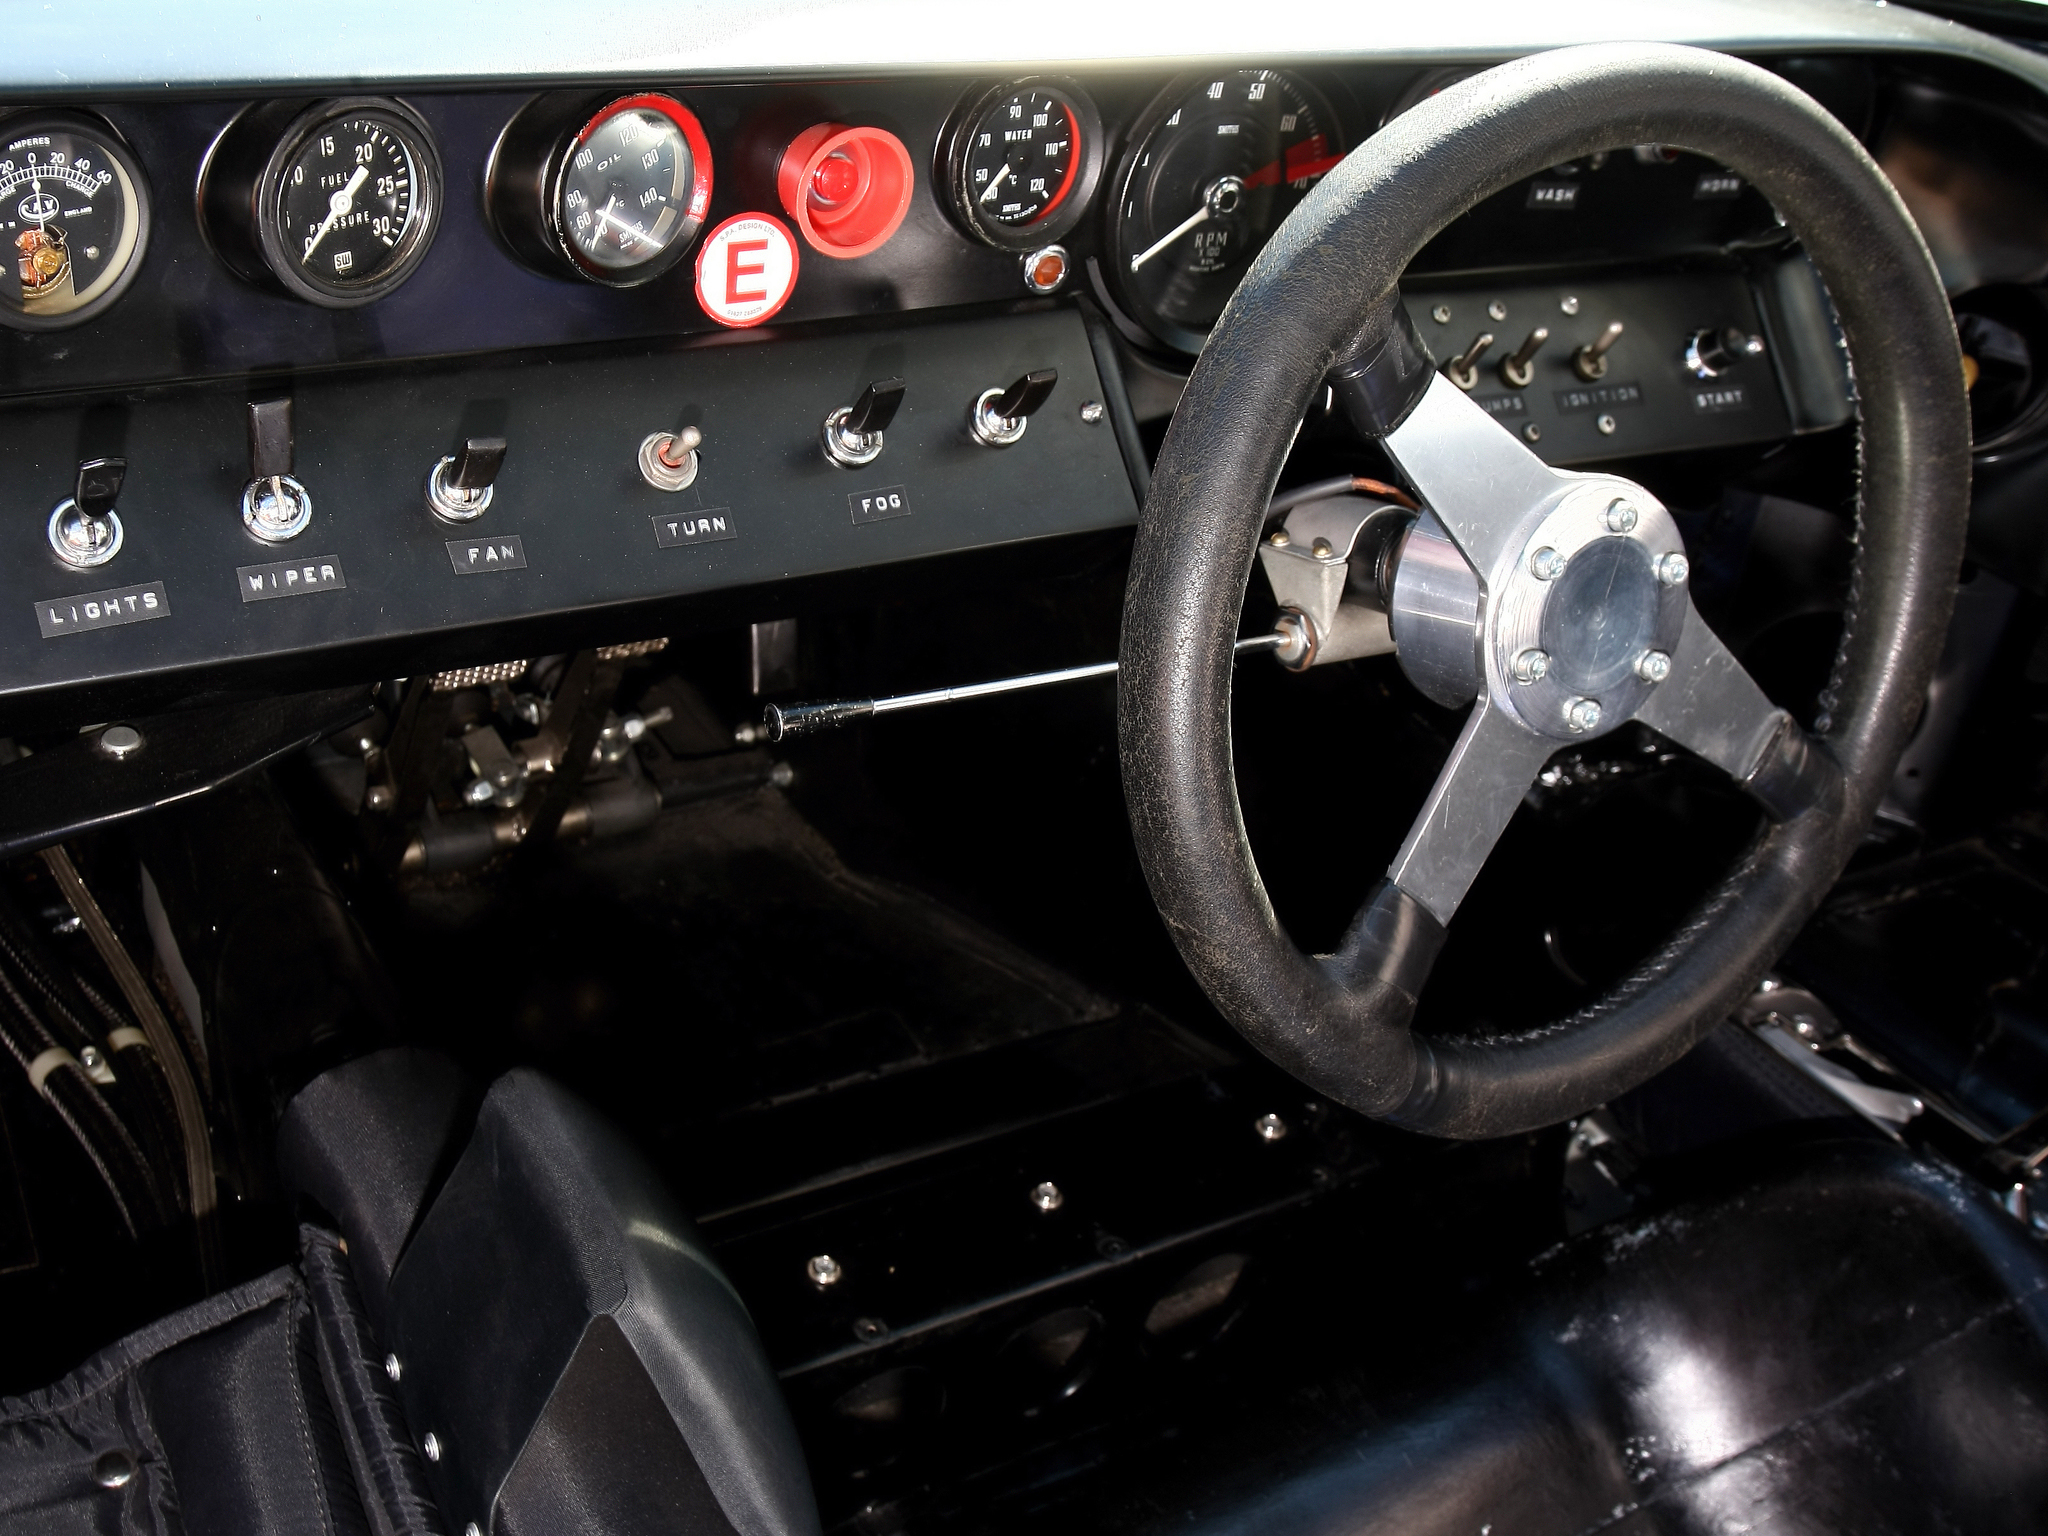 1968 ford gt40 gulf oil le mans race racing supercar classic interior g wallpaper 2048x1536 140823 wallpaperup